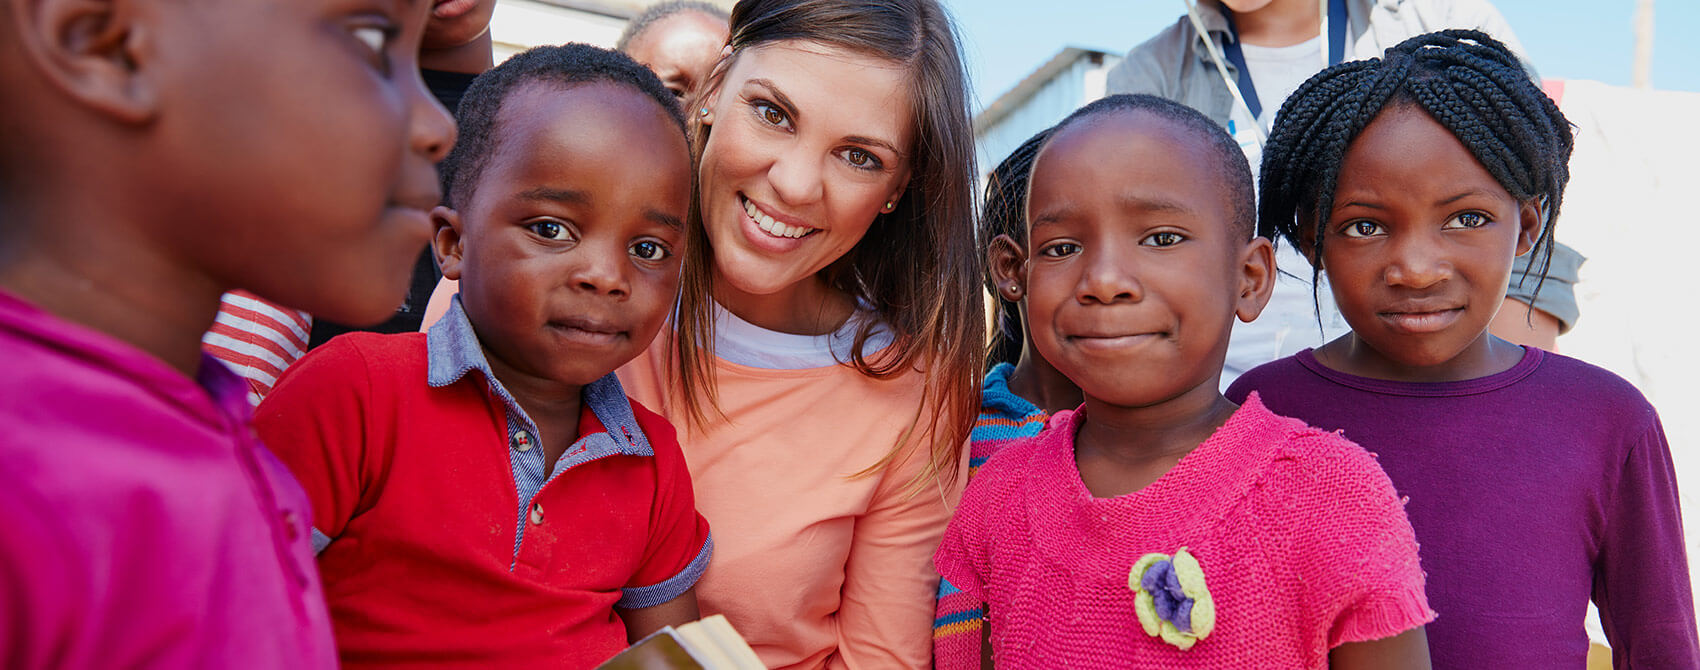 A female missionary posses with underprivileged children in a nondescript location.